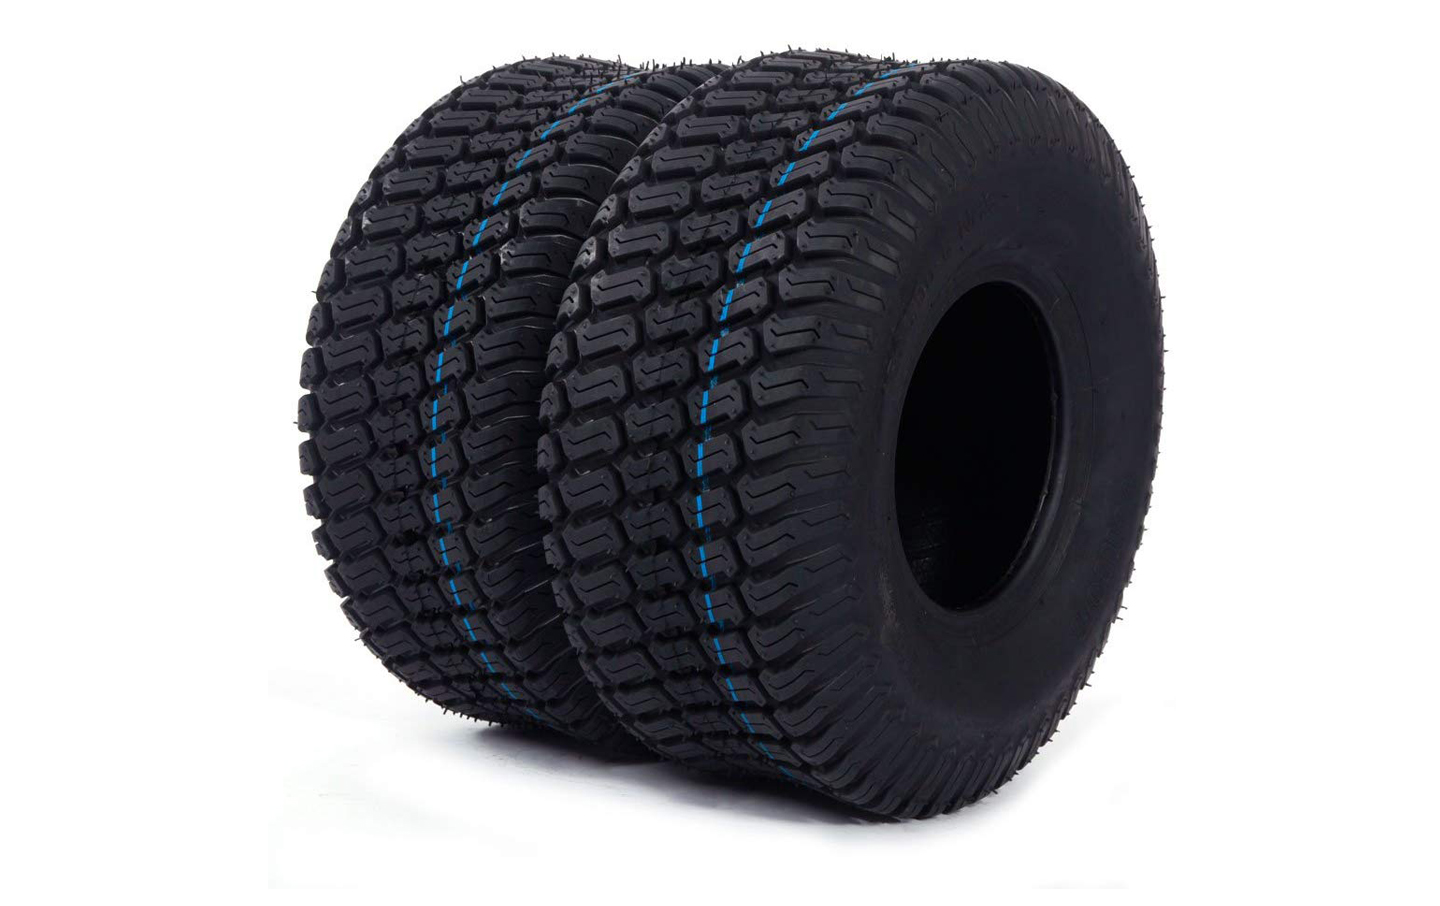 2 tubeless turf tires 20x10.00x8 replace Bad Boy 022-6001-00